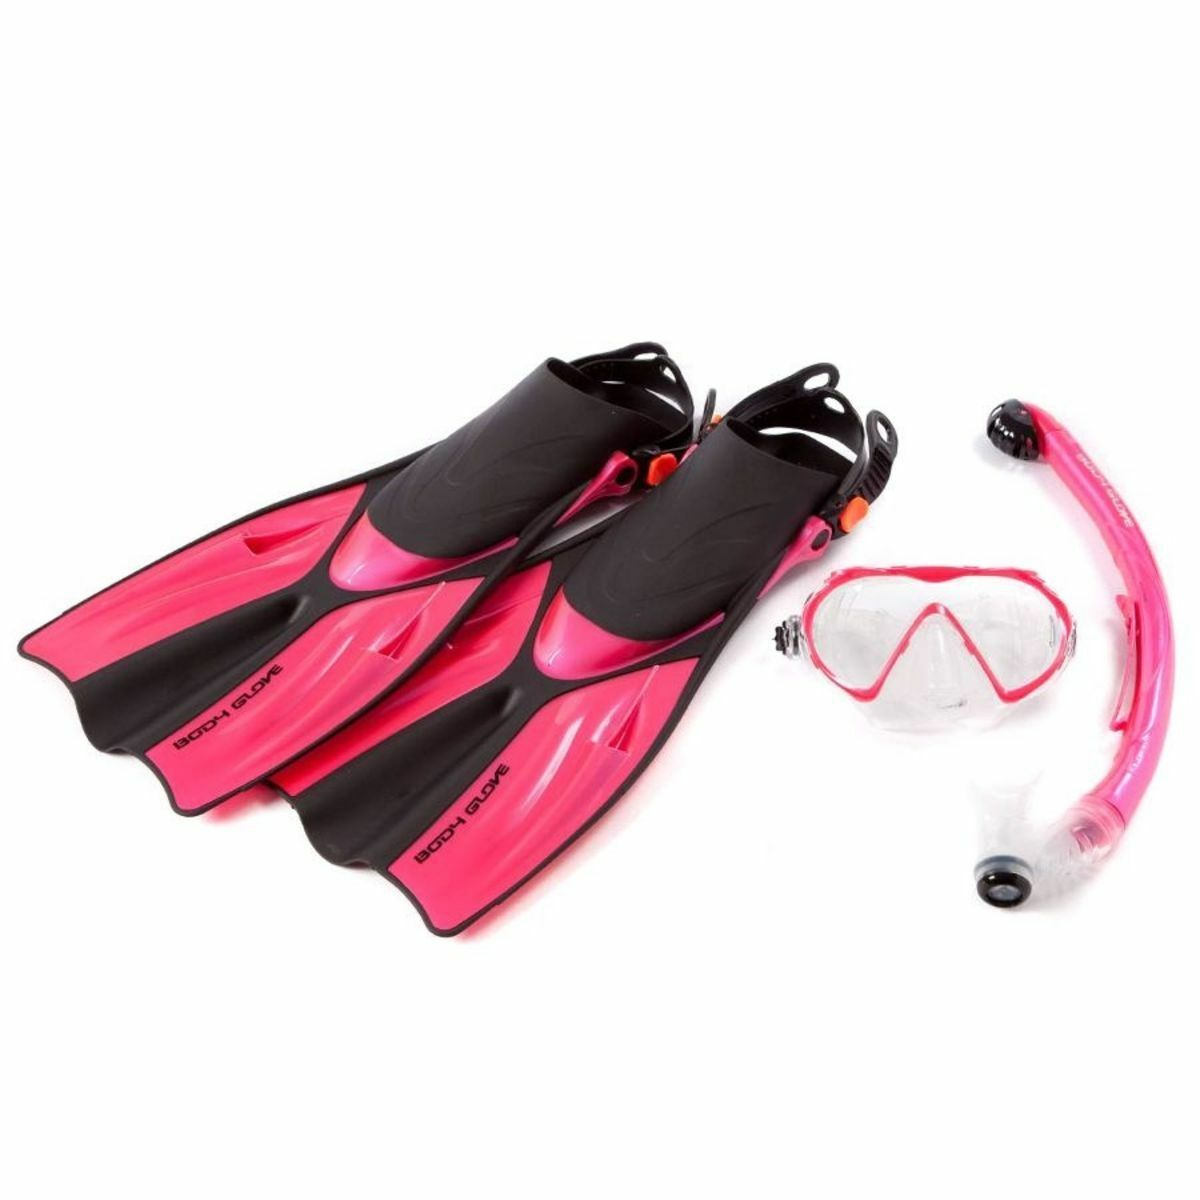 BODYGLOVE ADULT MASK FINS DRY SNORKEL SET FULL + BAG - SILICONE- Size UK 8-10.5